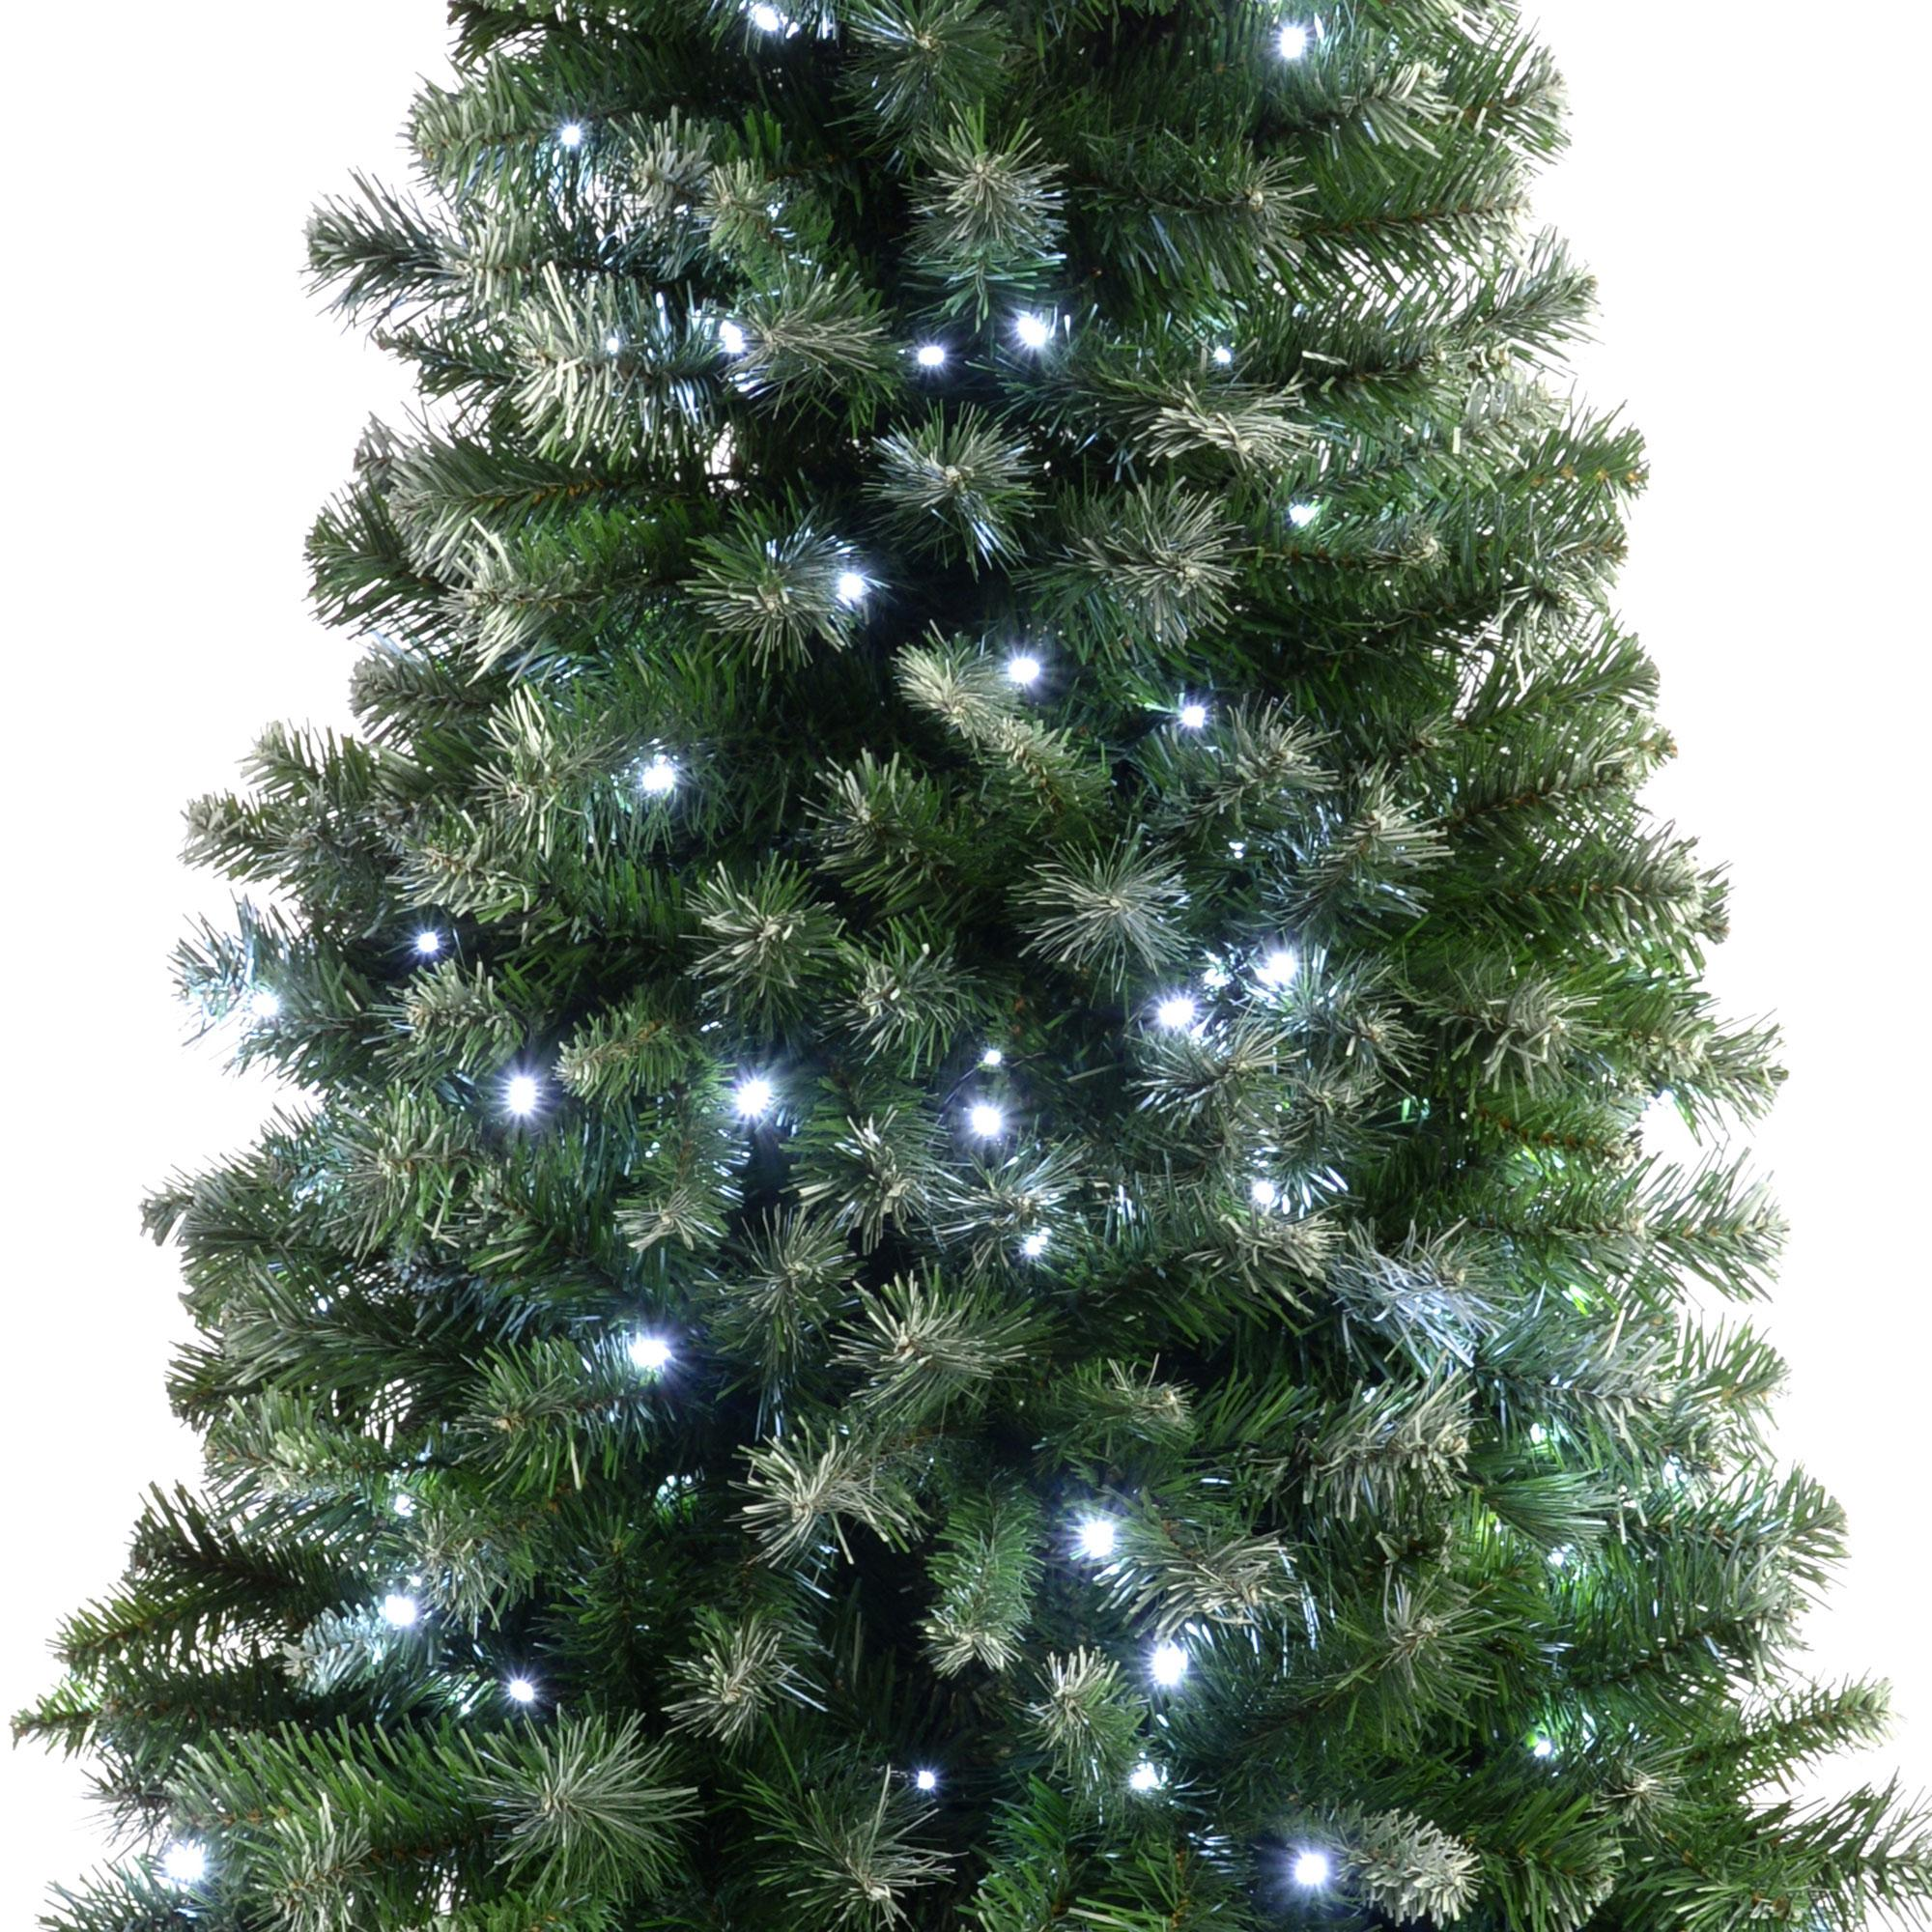 Artificial Christmas Trees Amazon Uk: WeRChristmas Pre-Lit Slim Frosted Christmas Tree With 200